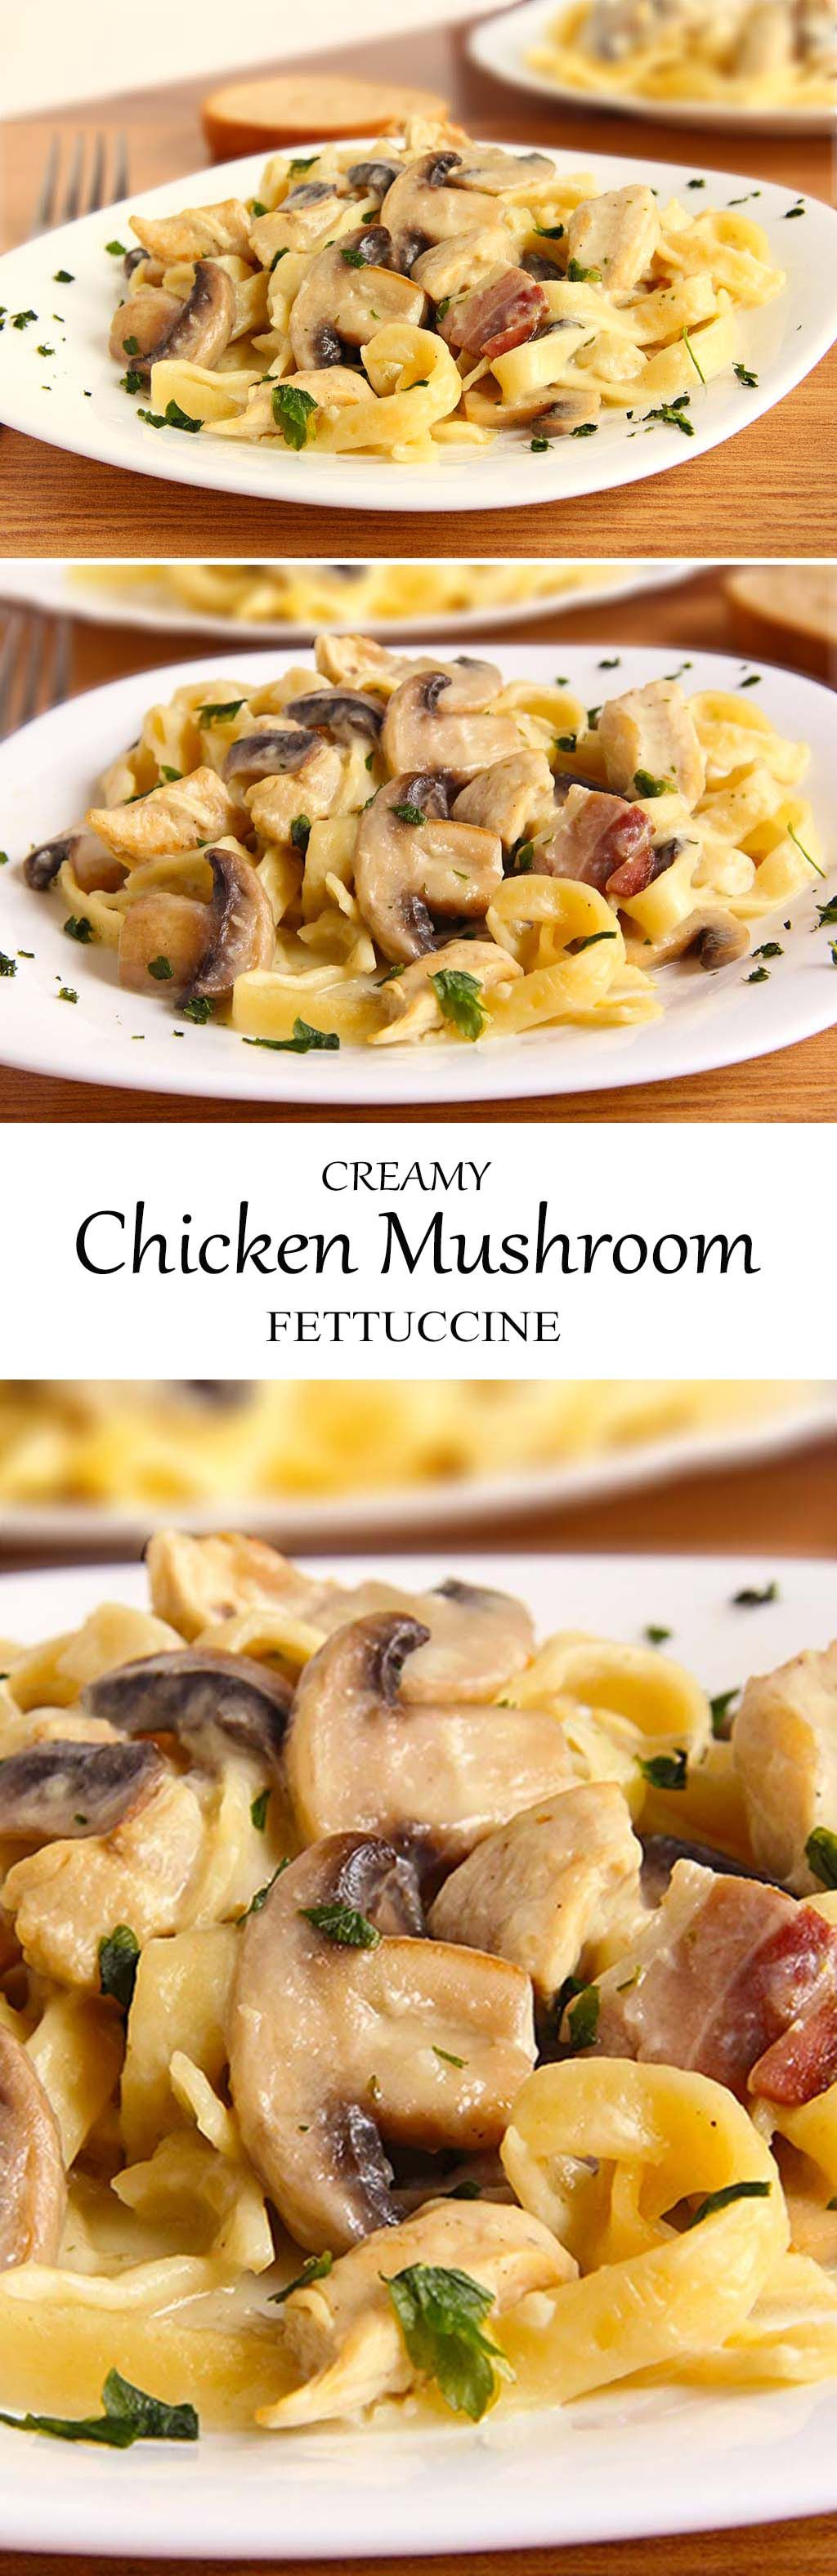 Fall has finally arrived. Creamy Chicken Mushroom Fettuccine is what you'll need, folks. I hope this warms your belly as you celebrate fall!